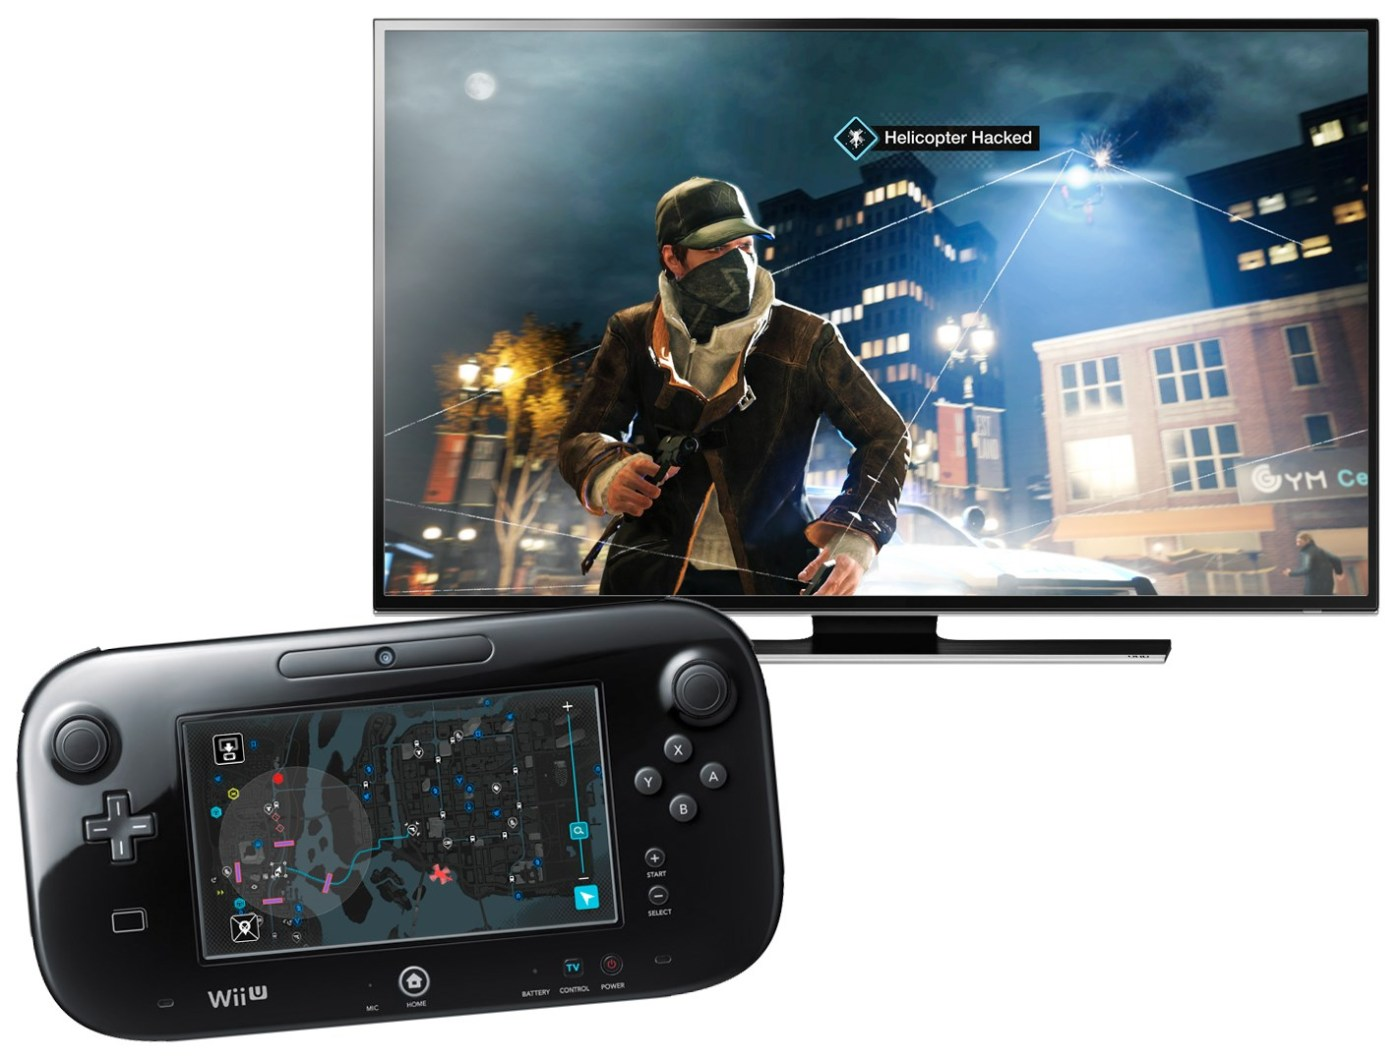 http://sickr.files.wordpress.com/2014/11/watch_dogs_wii_u_gamepad.jpg?w=1400&h=